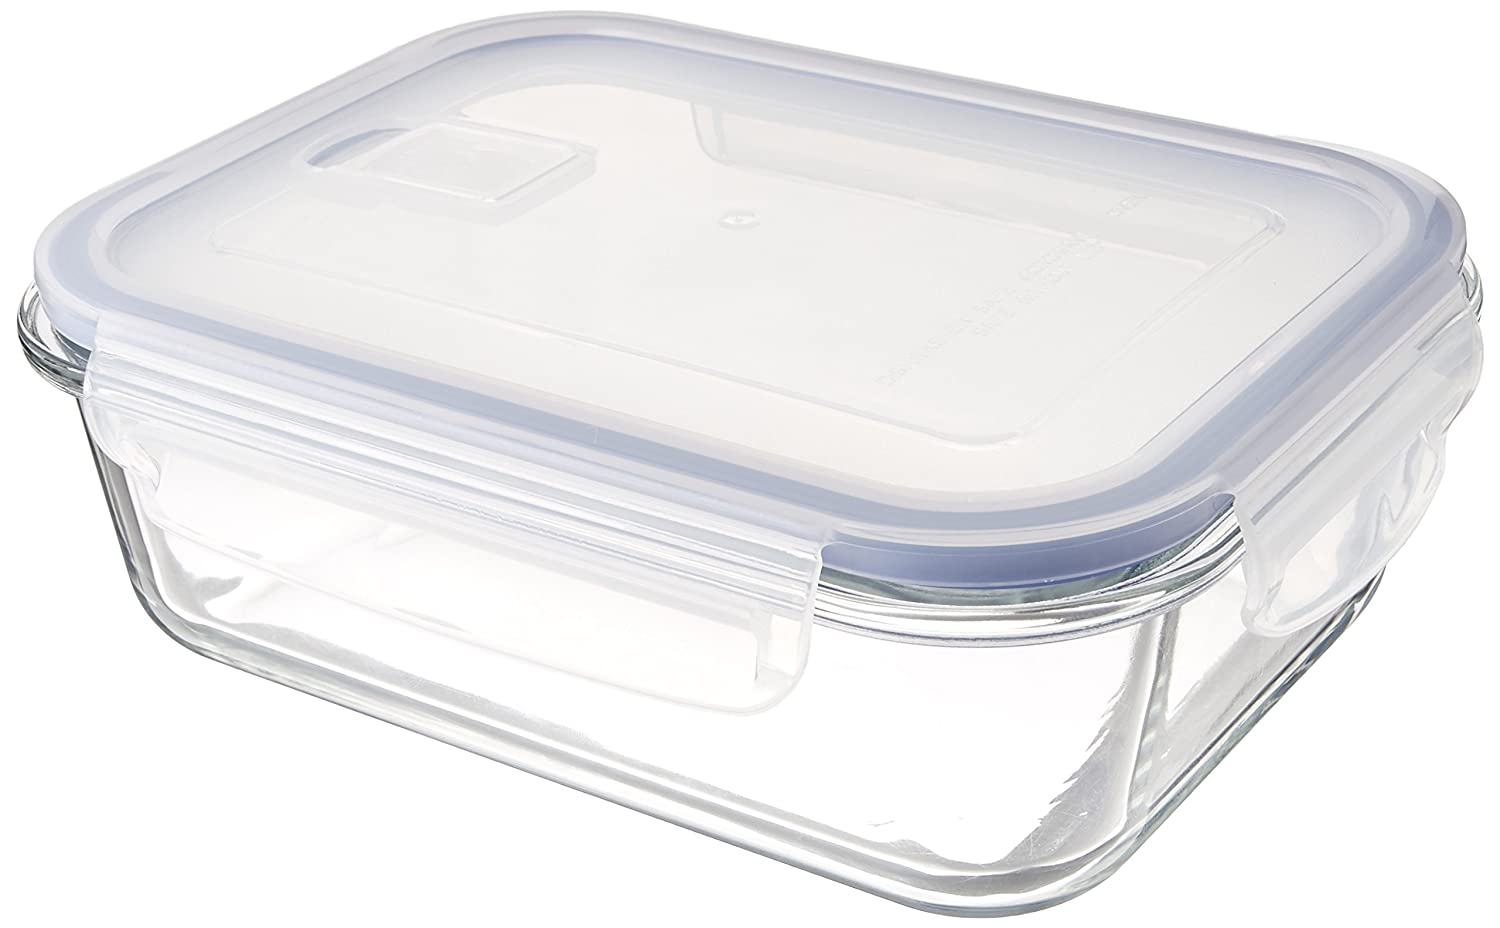 B4001-2 Uniware Heat Resistant Premium Glass Food Container with Snap-Lock Lid(Rectangle) (35 OZ)